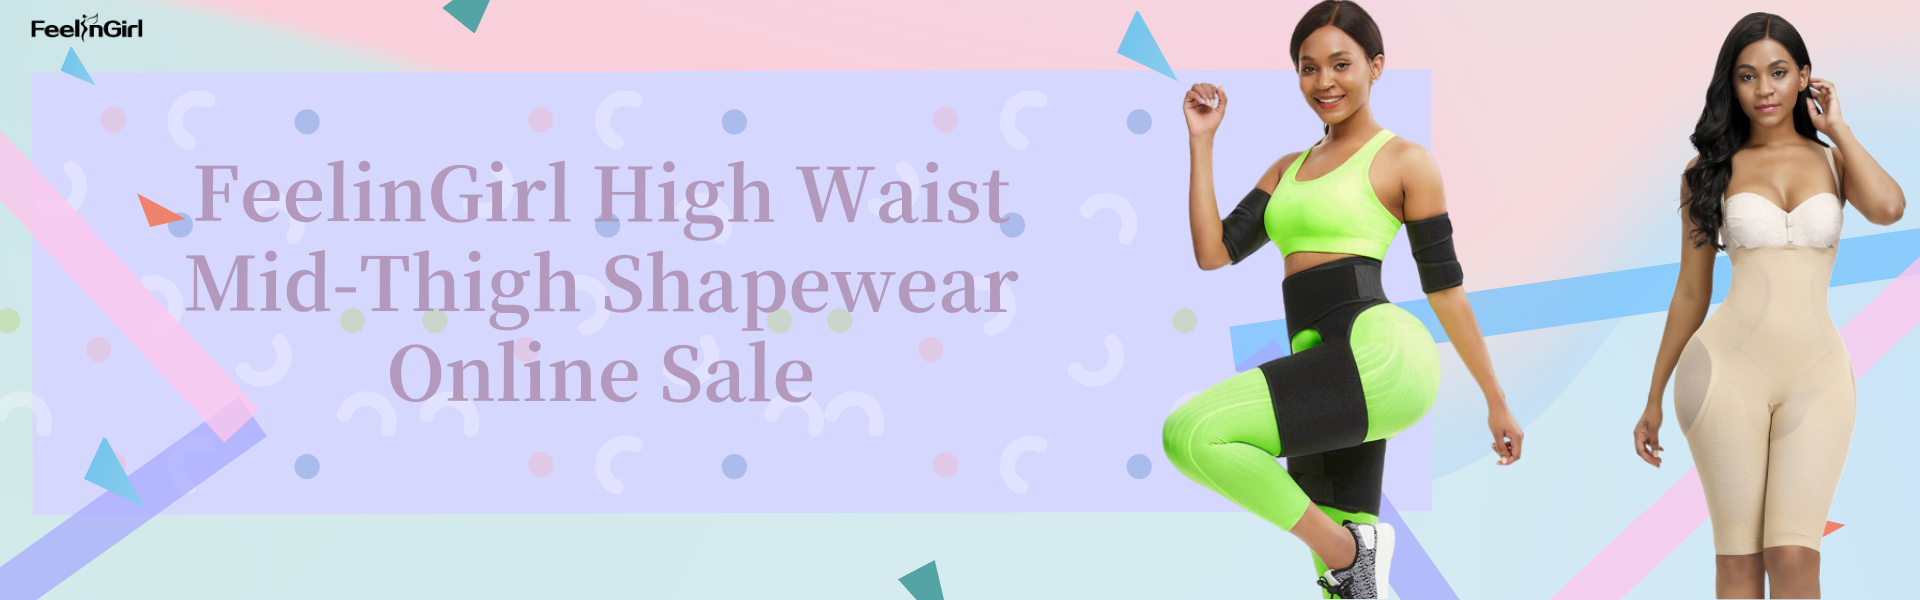 FeelinGirl High Waist Mid-Thigh Shapewear Online Sale